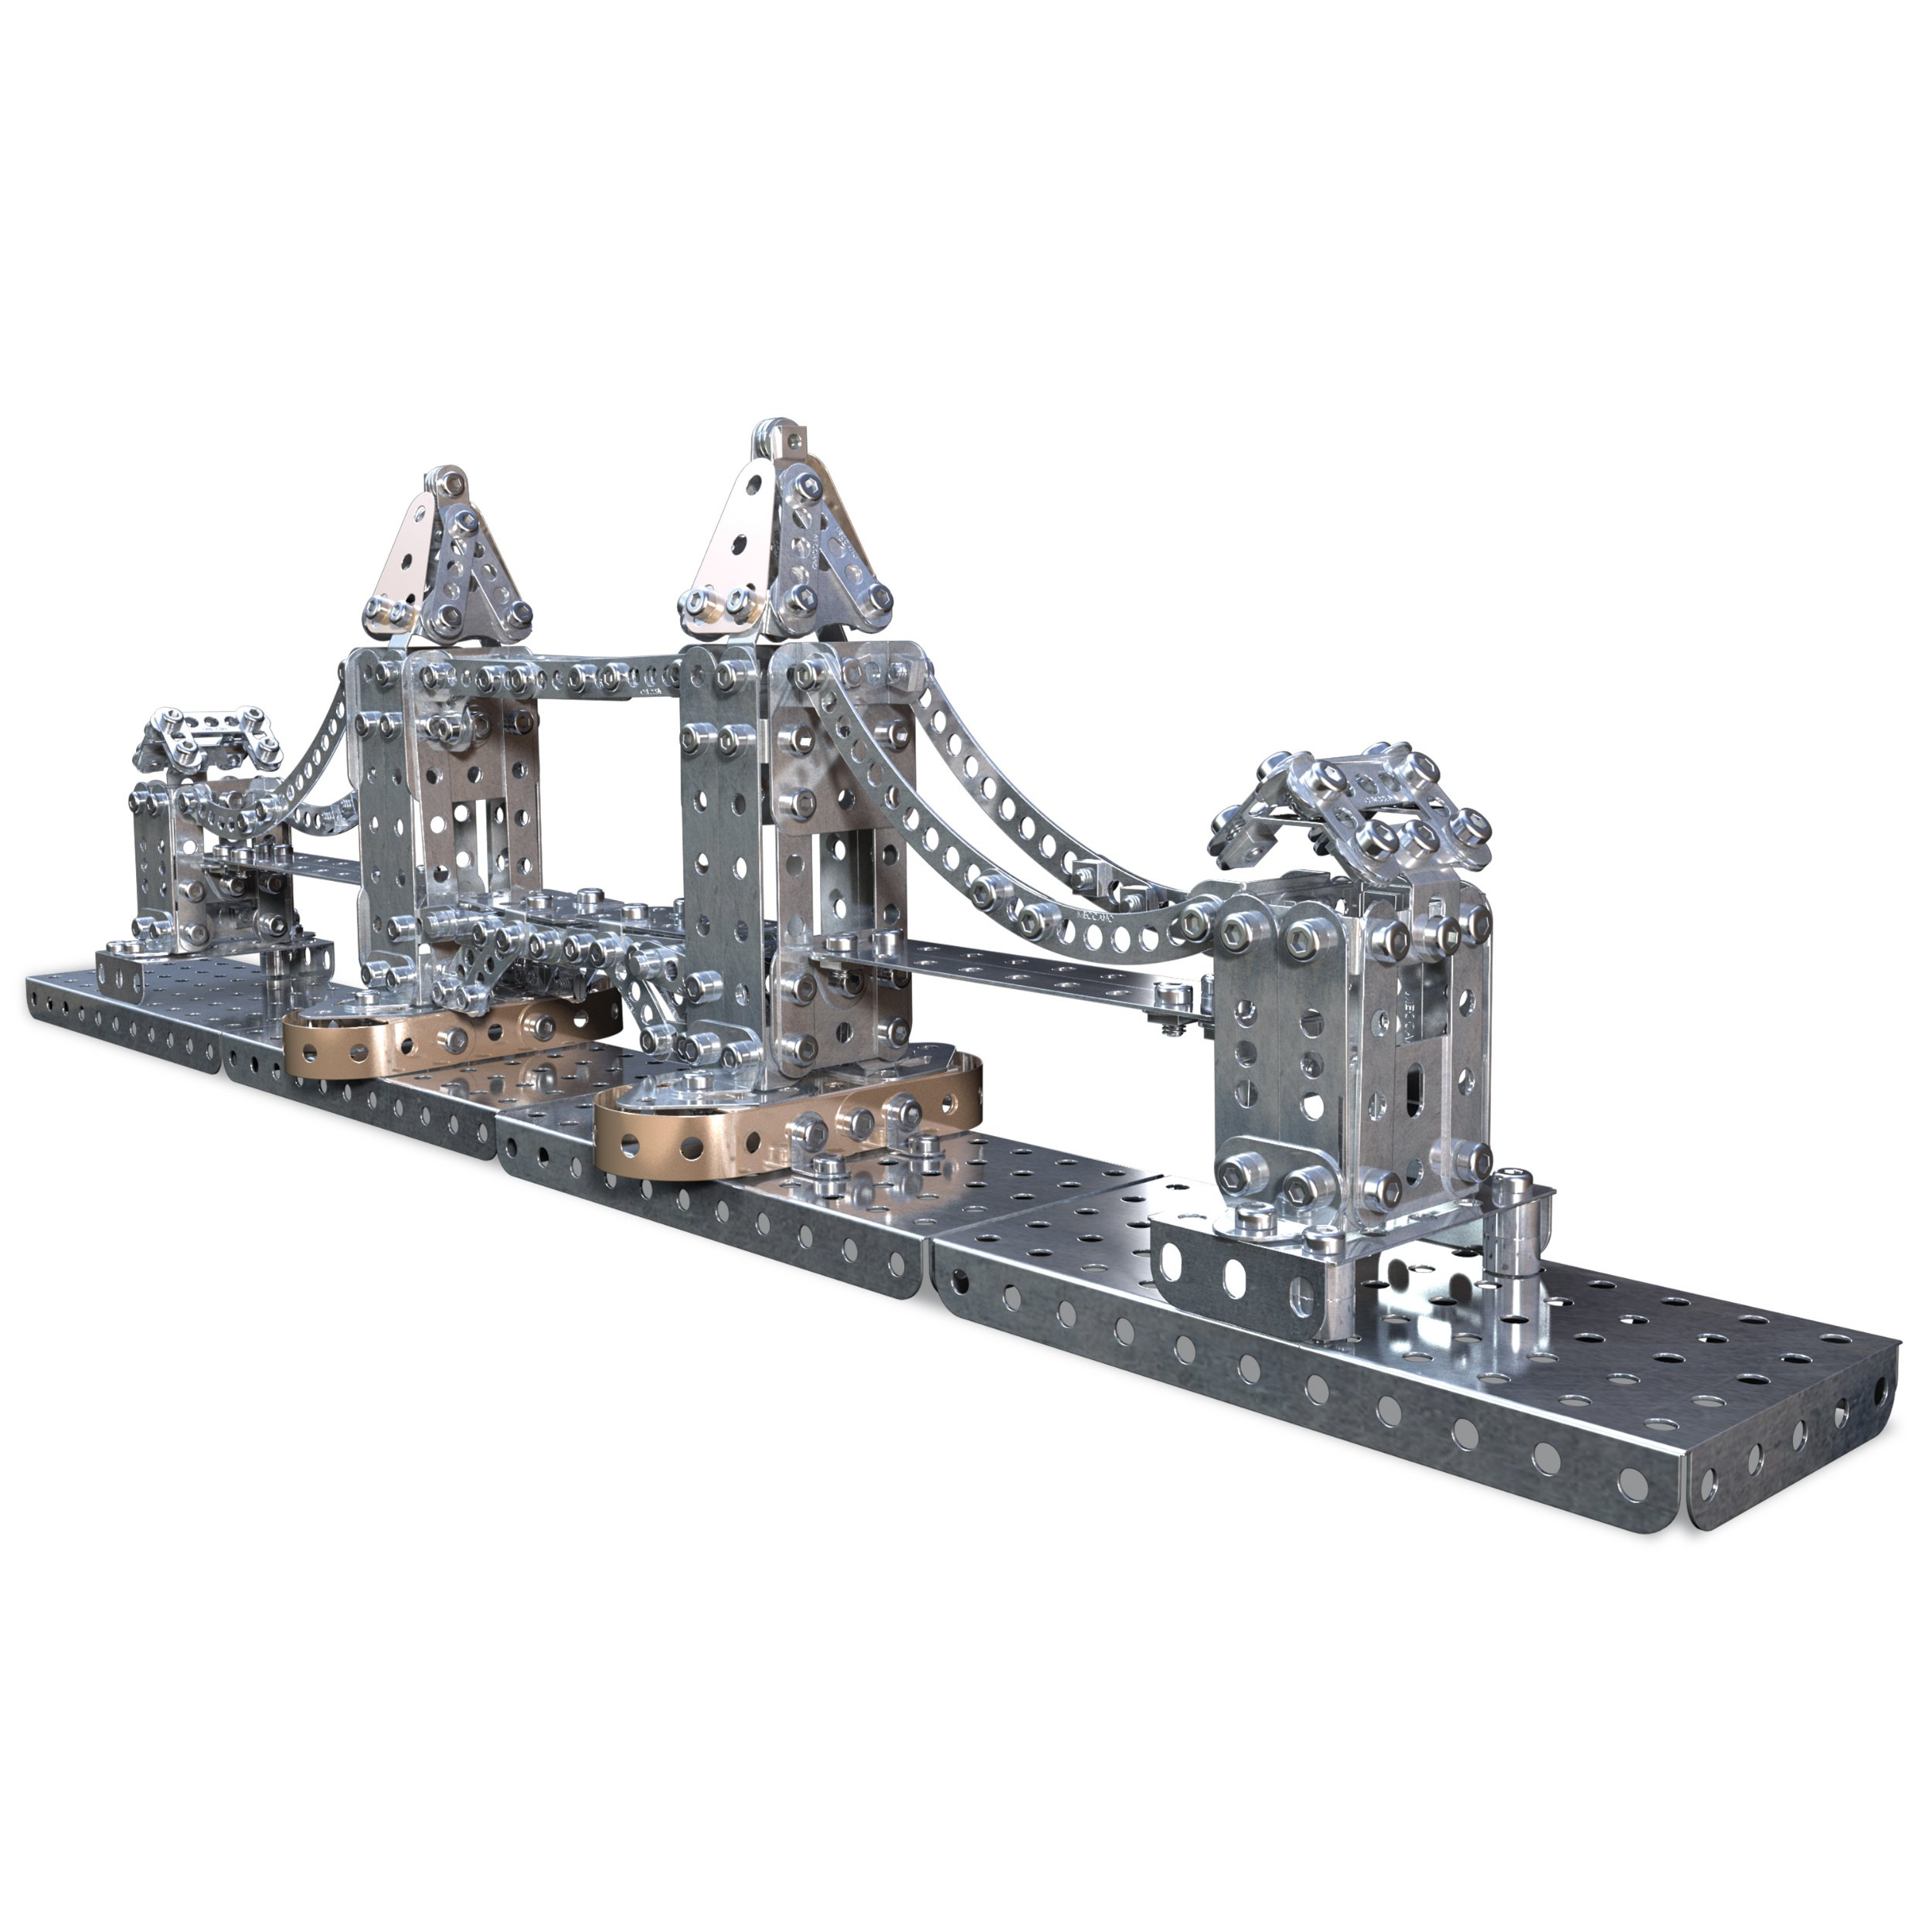 Meccano Tower Bridge Model Building Set, 742 Pieces, For Ages 10+, STEM Construction Education Toy